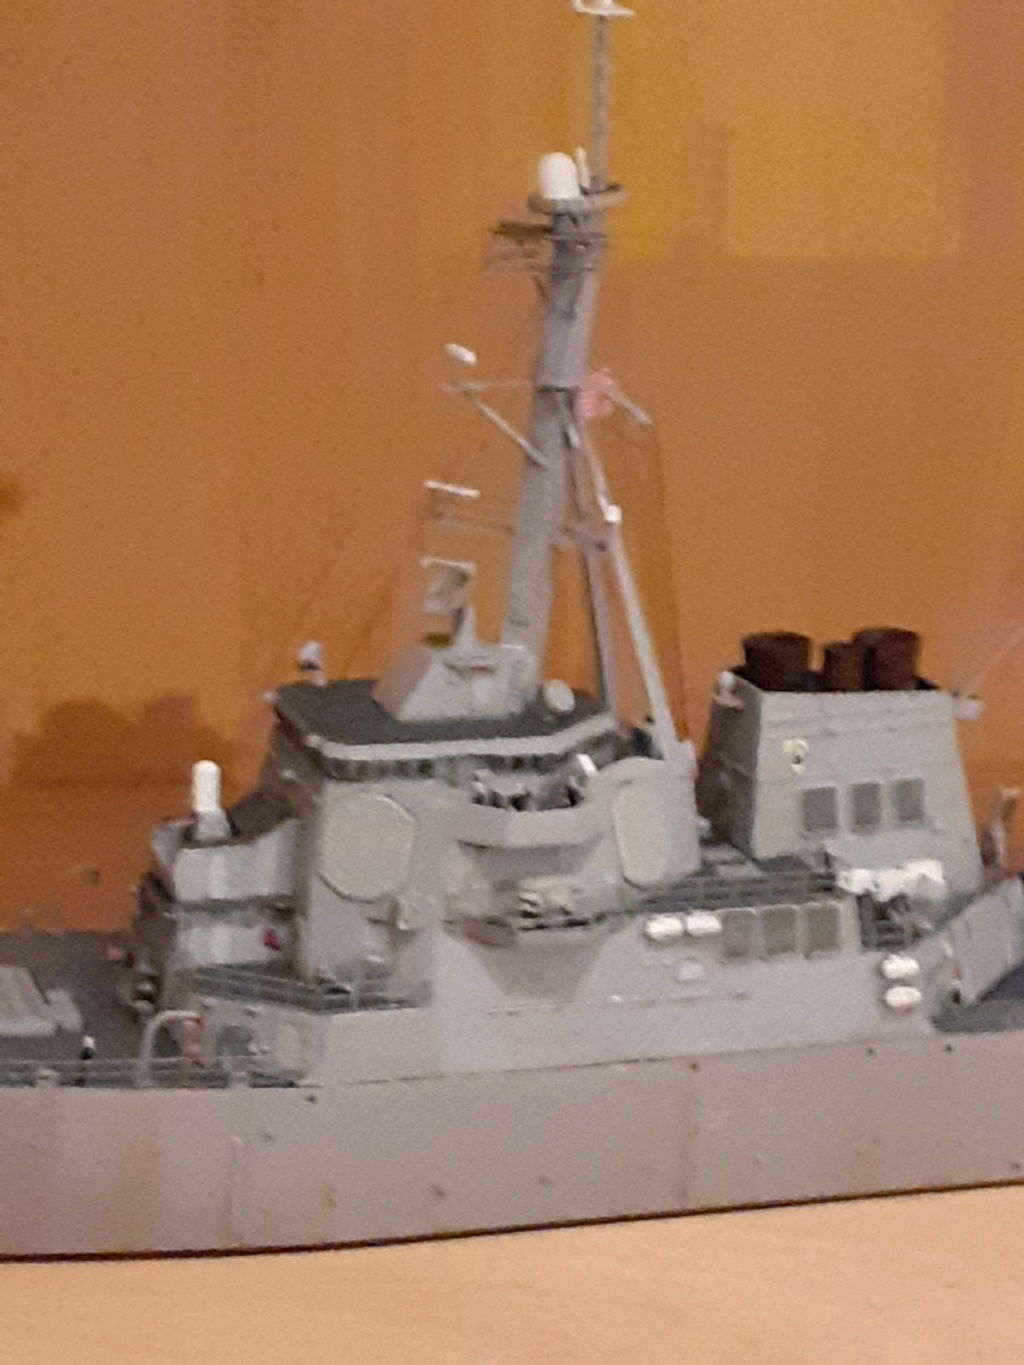 « Rapide et Craint » - Destroyer Lance Missiles USS Arleigh Burke (Trumpeter - 1/350) - Page 2 20200246